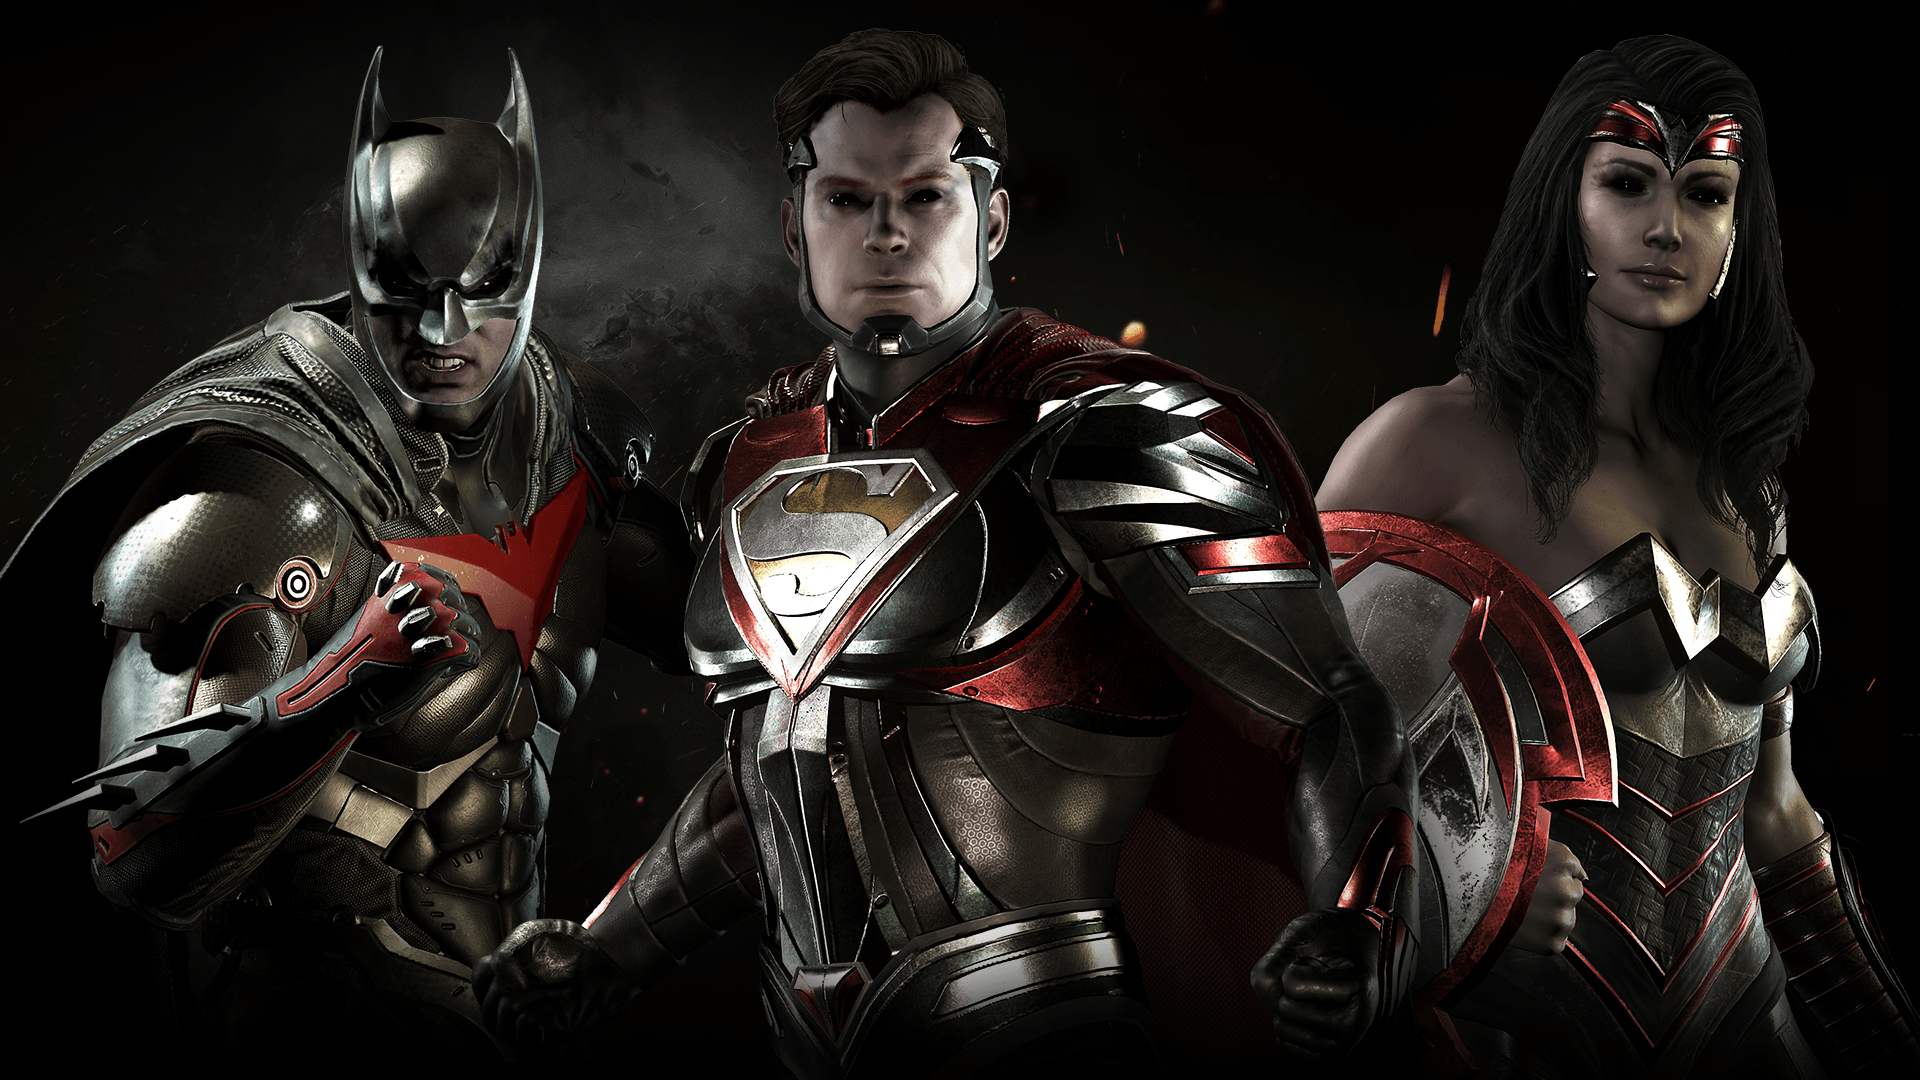 Demons Gear Shader Pack Injustice 2 Injustice Injustice 2 Batman Injustice 2